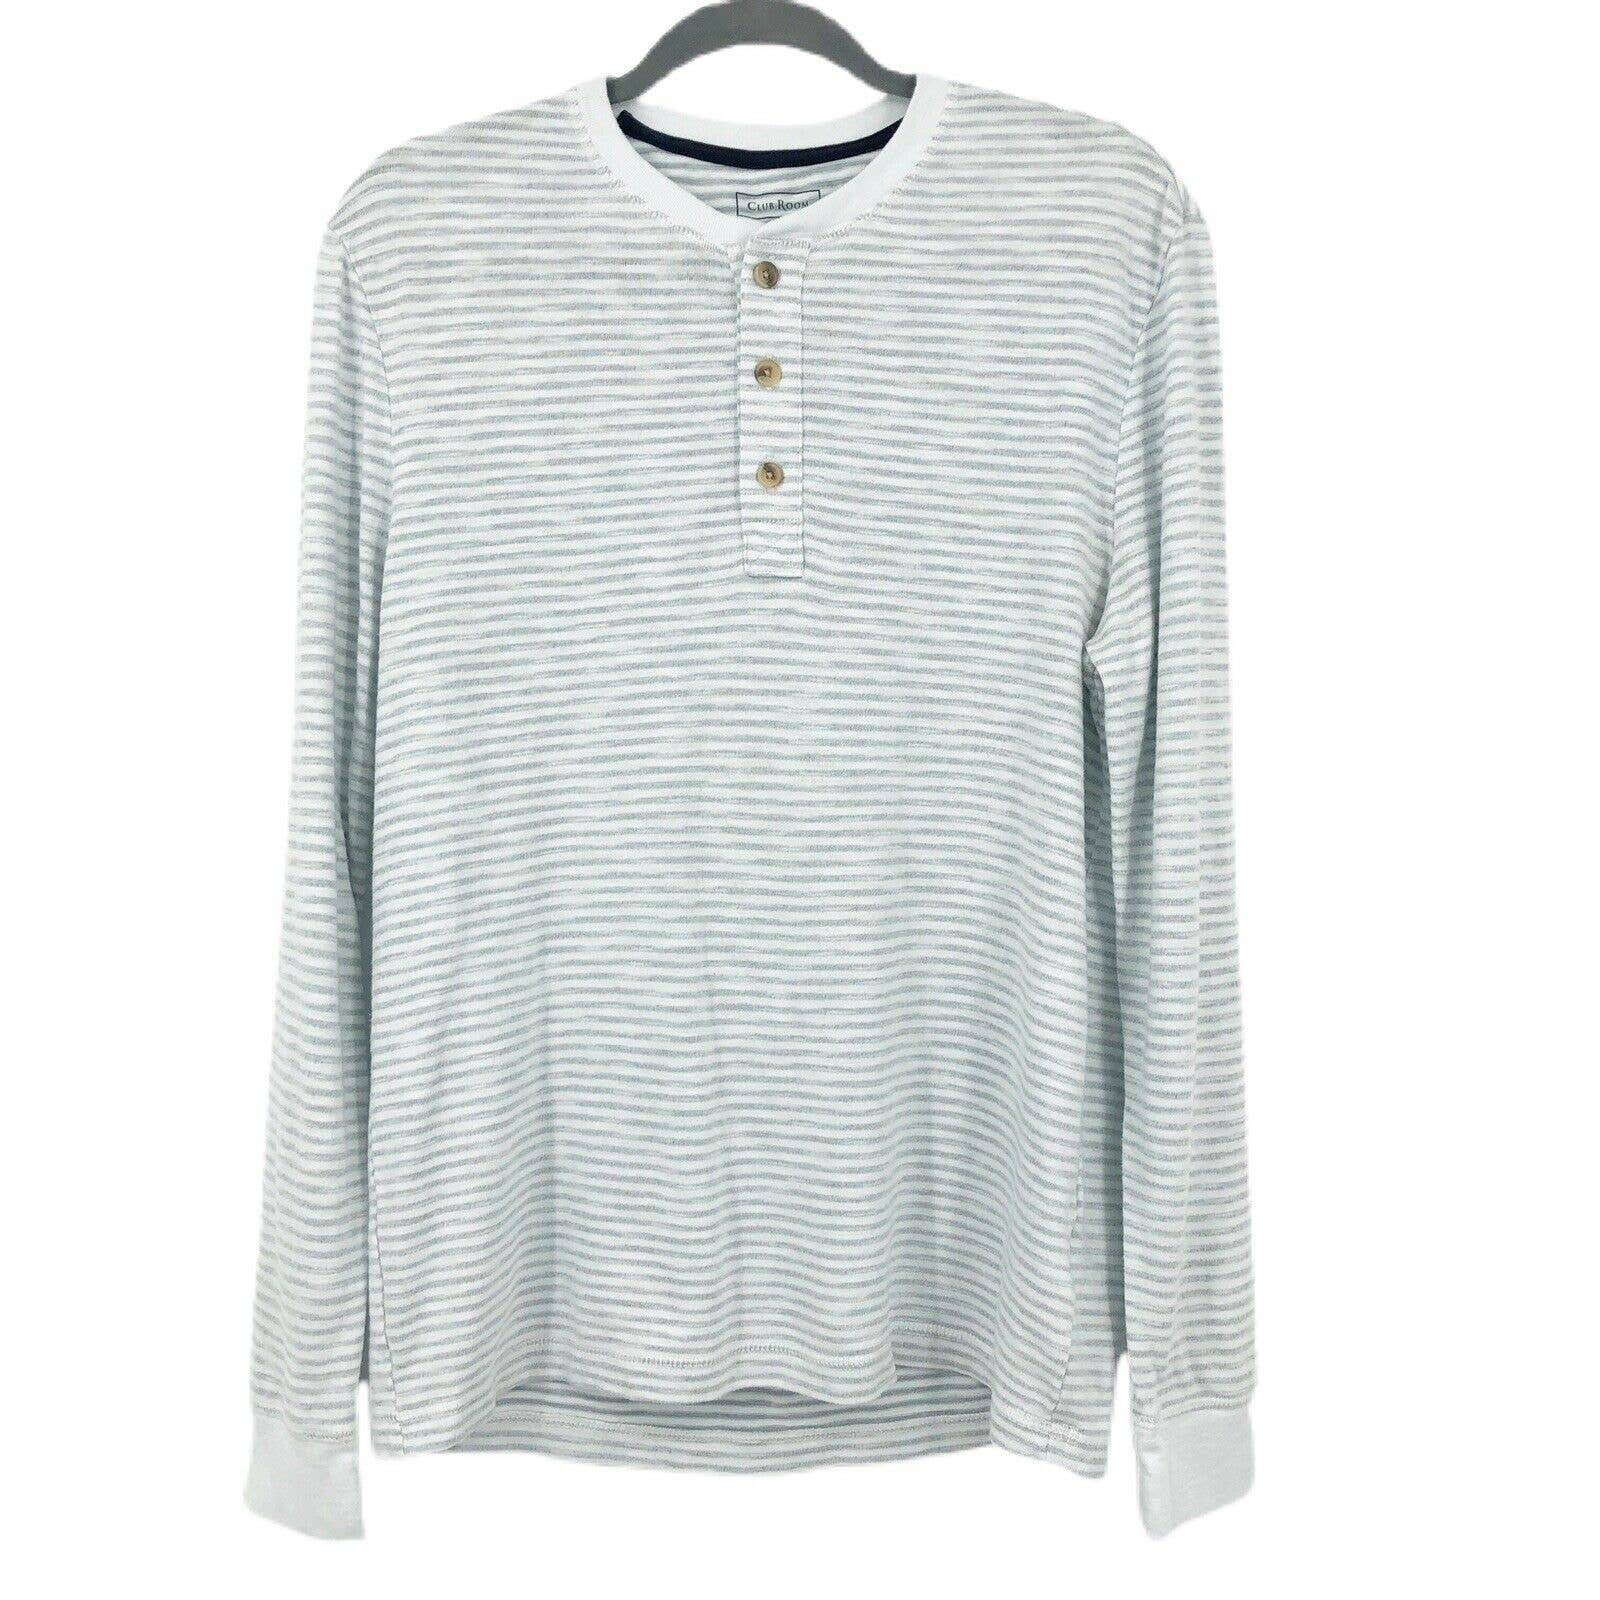 Club Room Henley Striped 1/4 Button Gray